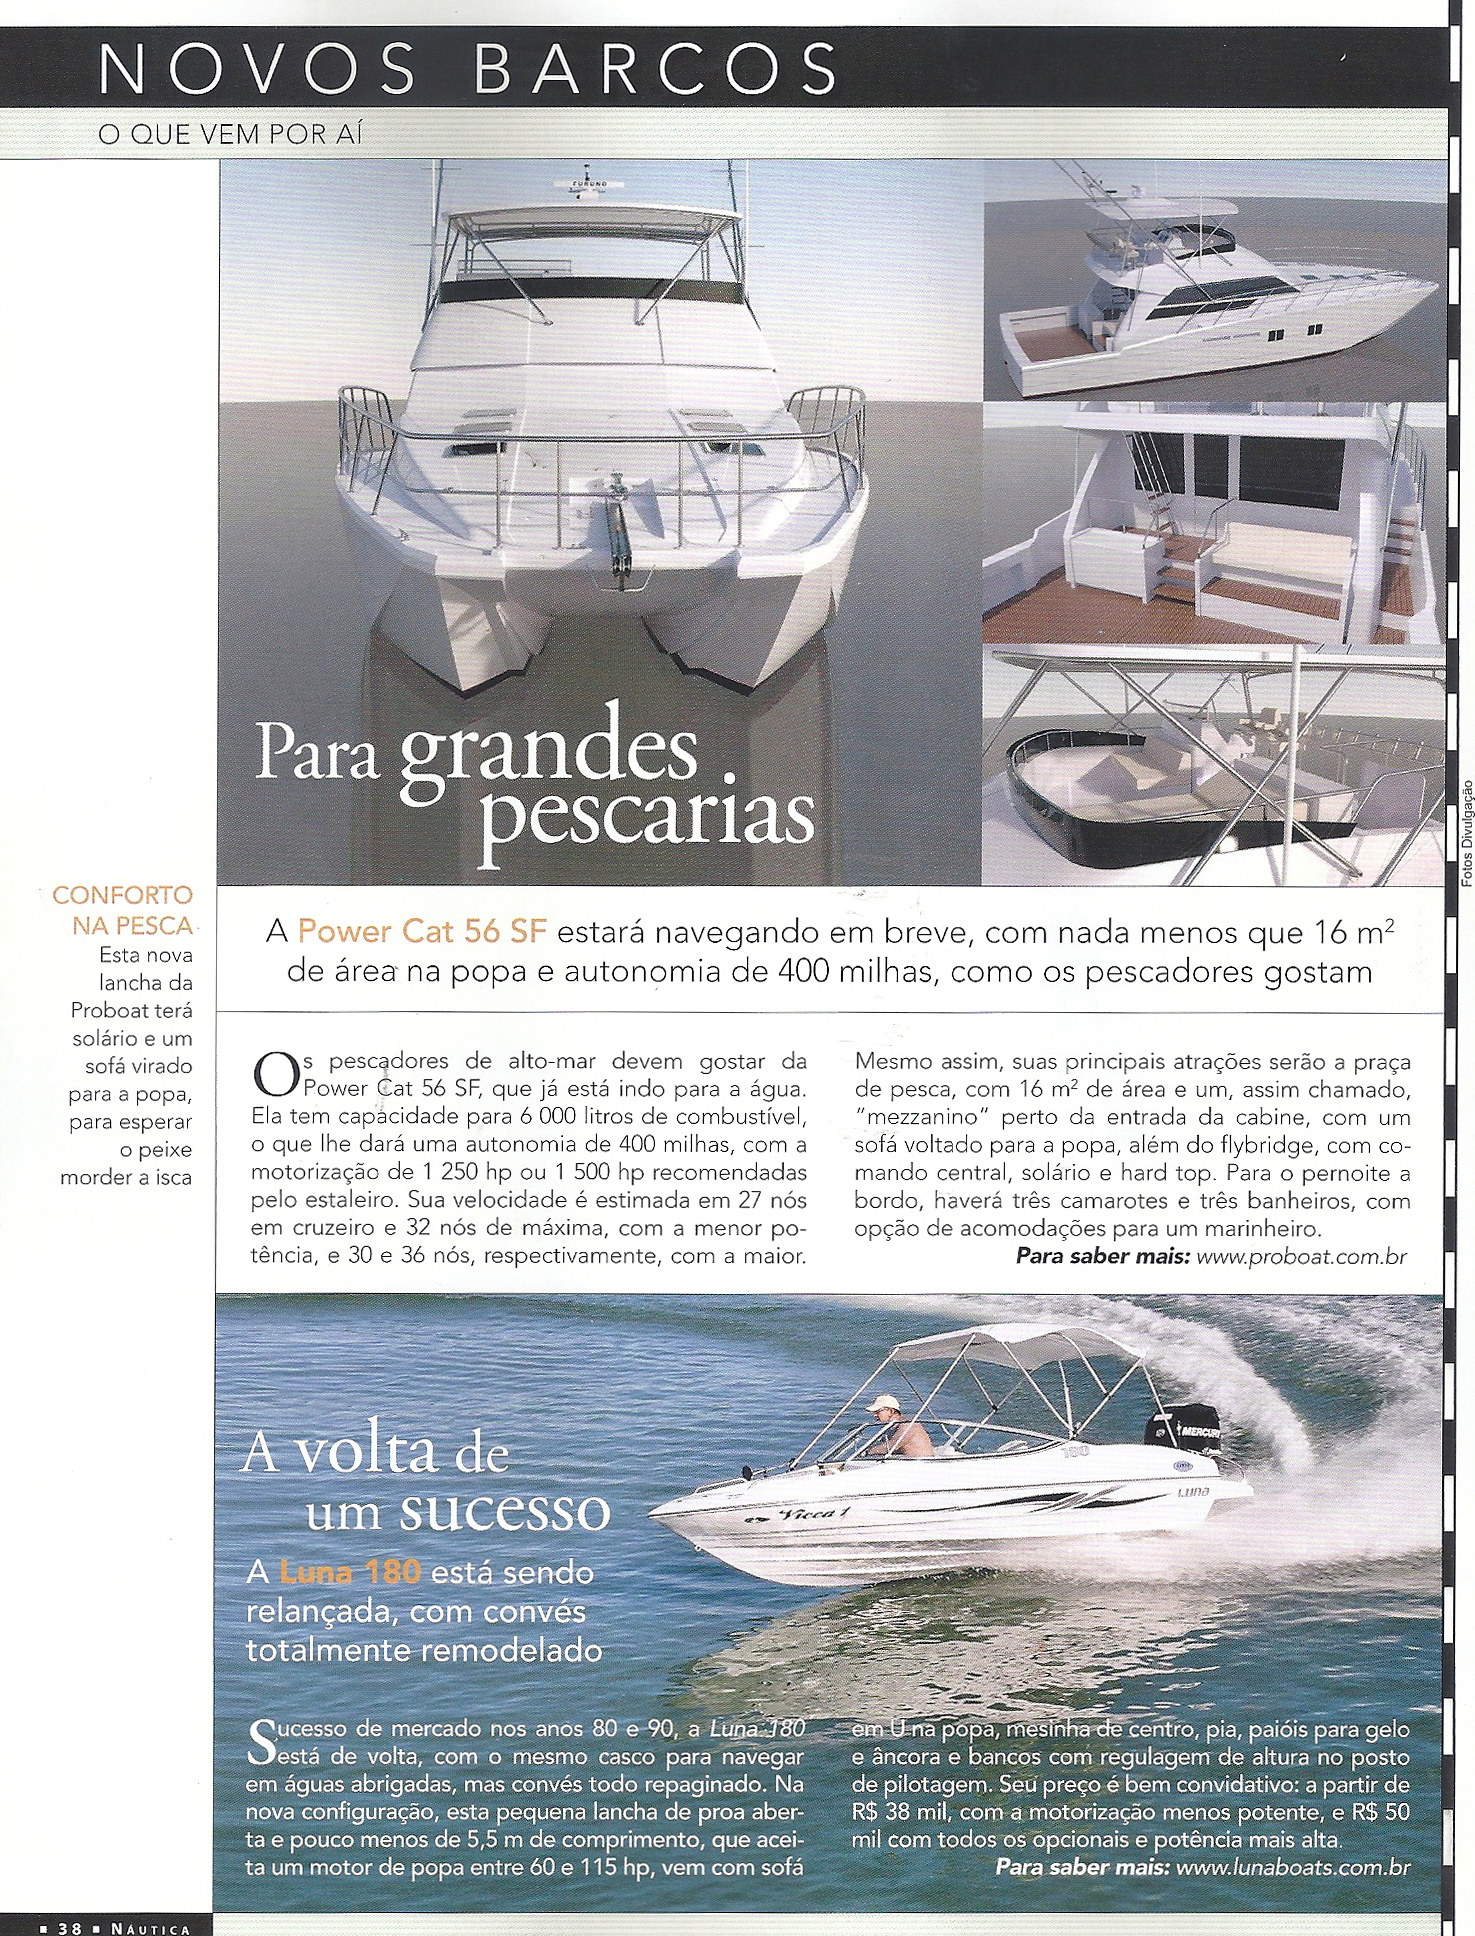 Revista Nautica 290-Pro Boat 56-Out 2012